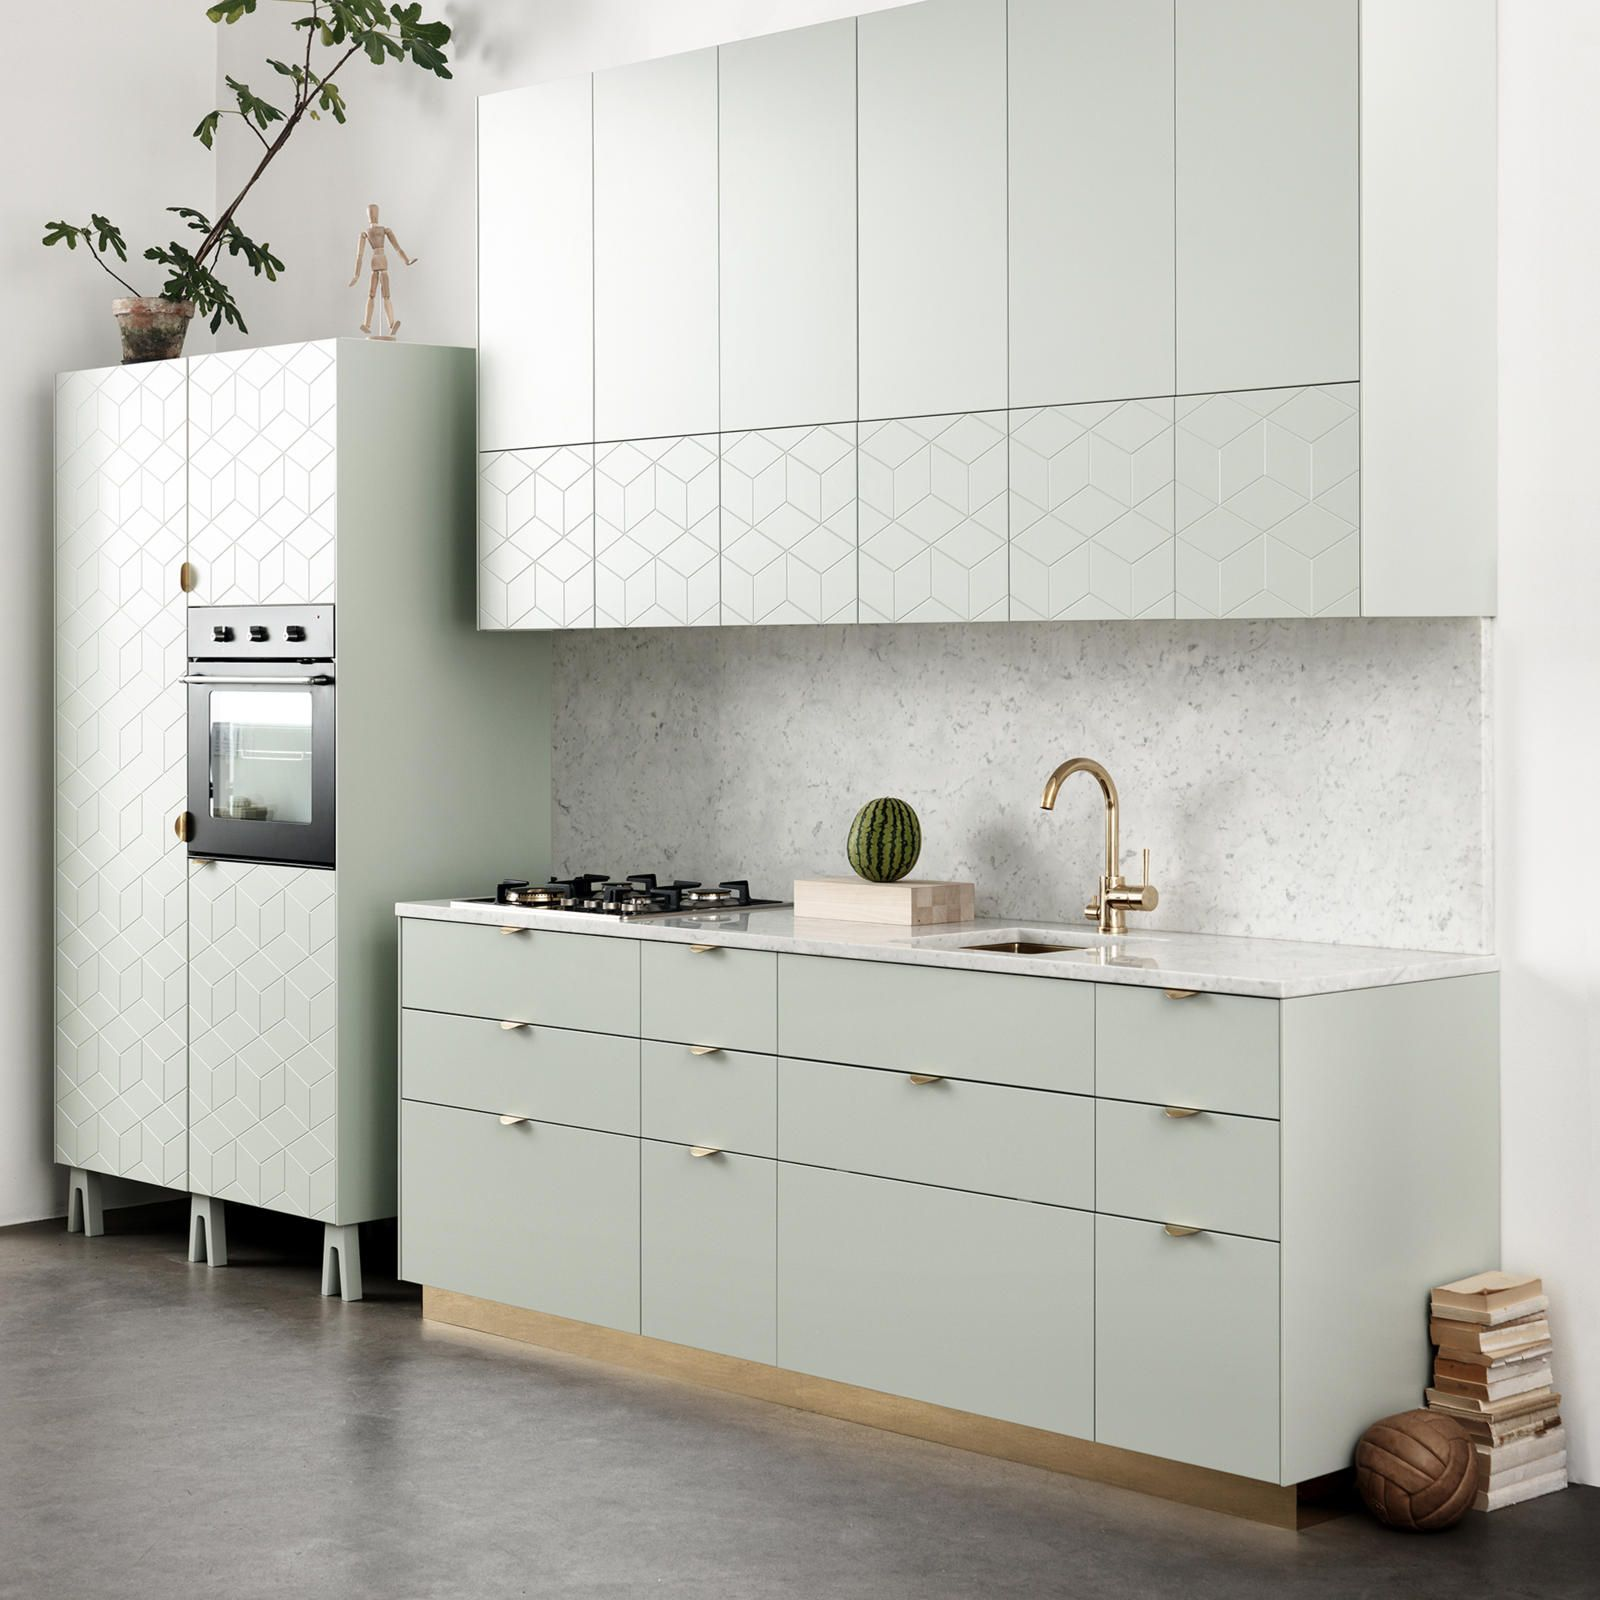 WOW super hacks for Ikea kitchens and storageperfront